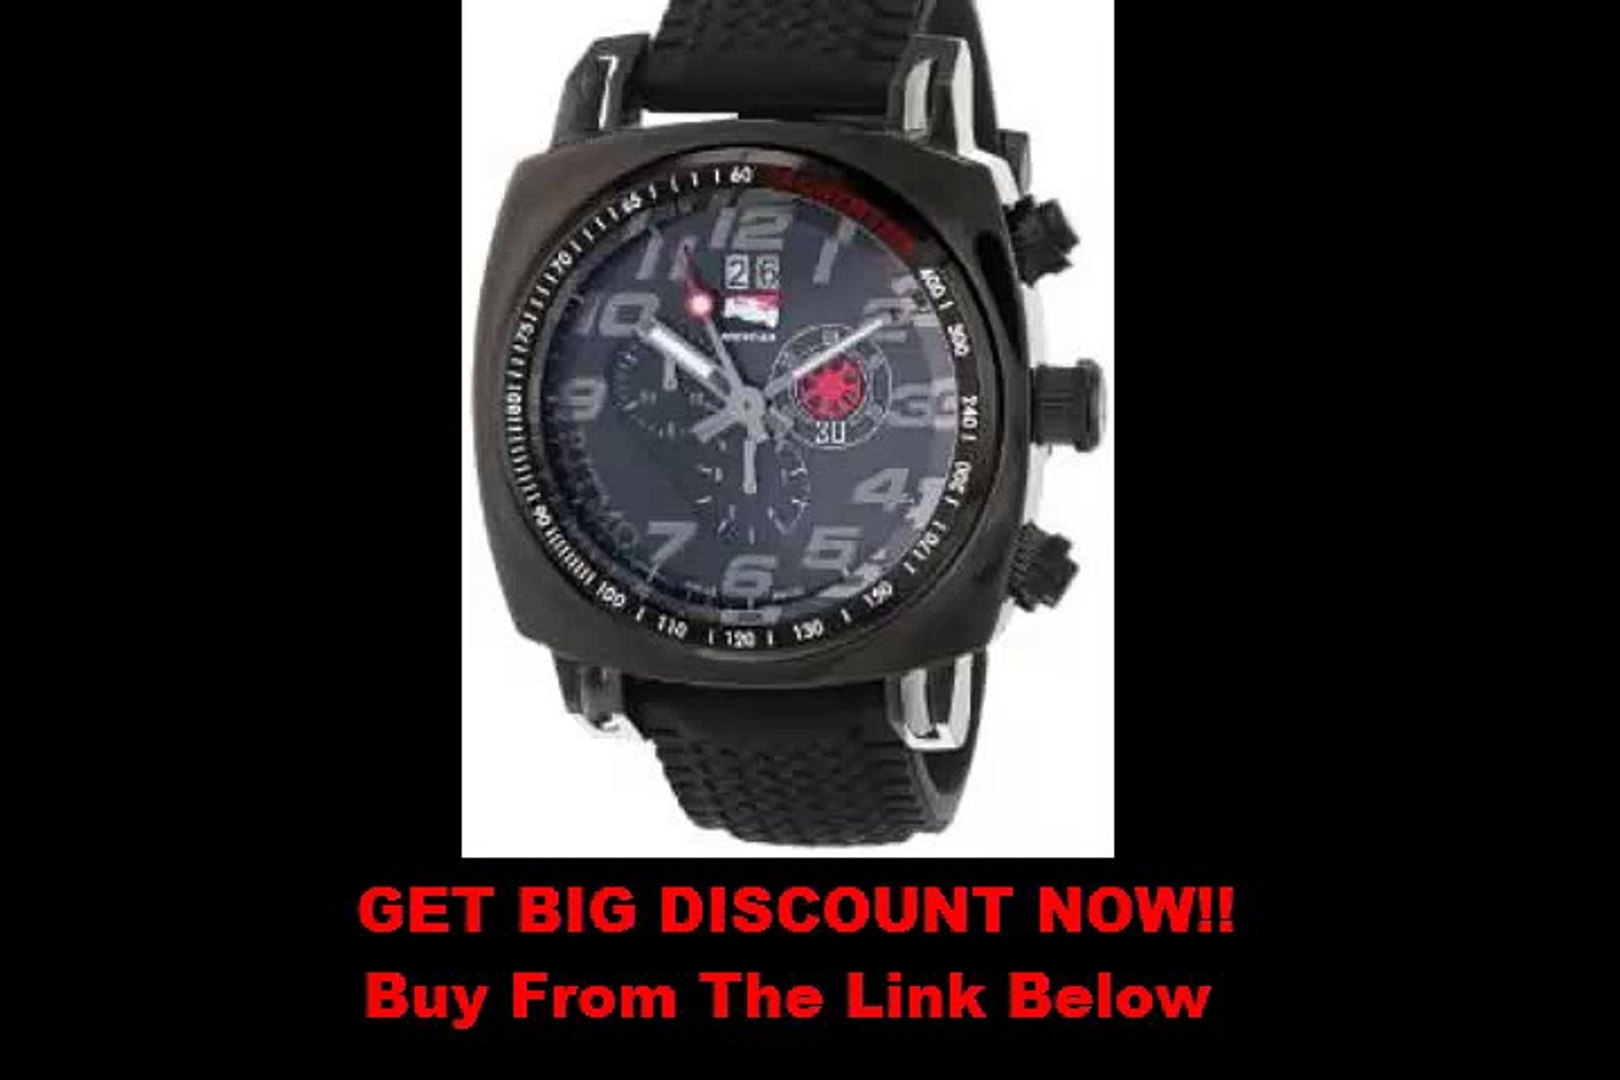 FOR SALE Ritmo Mundo Men's 221 INDYCAR Series Black Stainless Steel Watch with Tire-Tread Strap